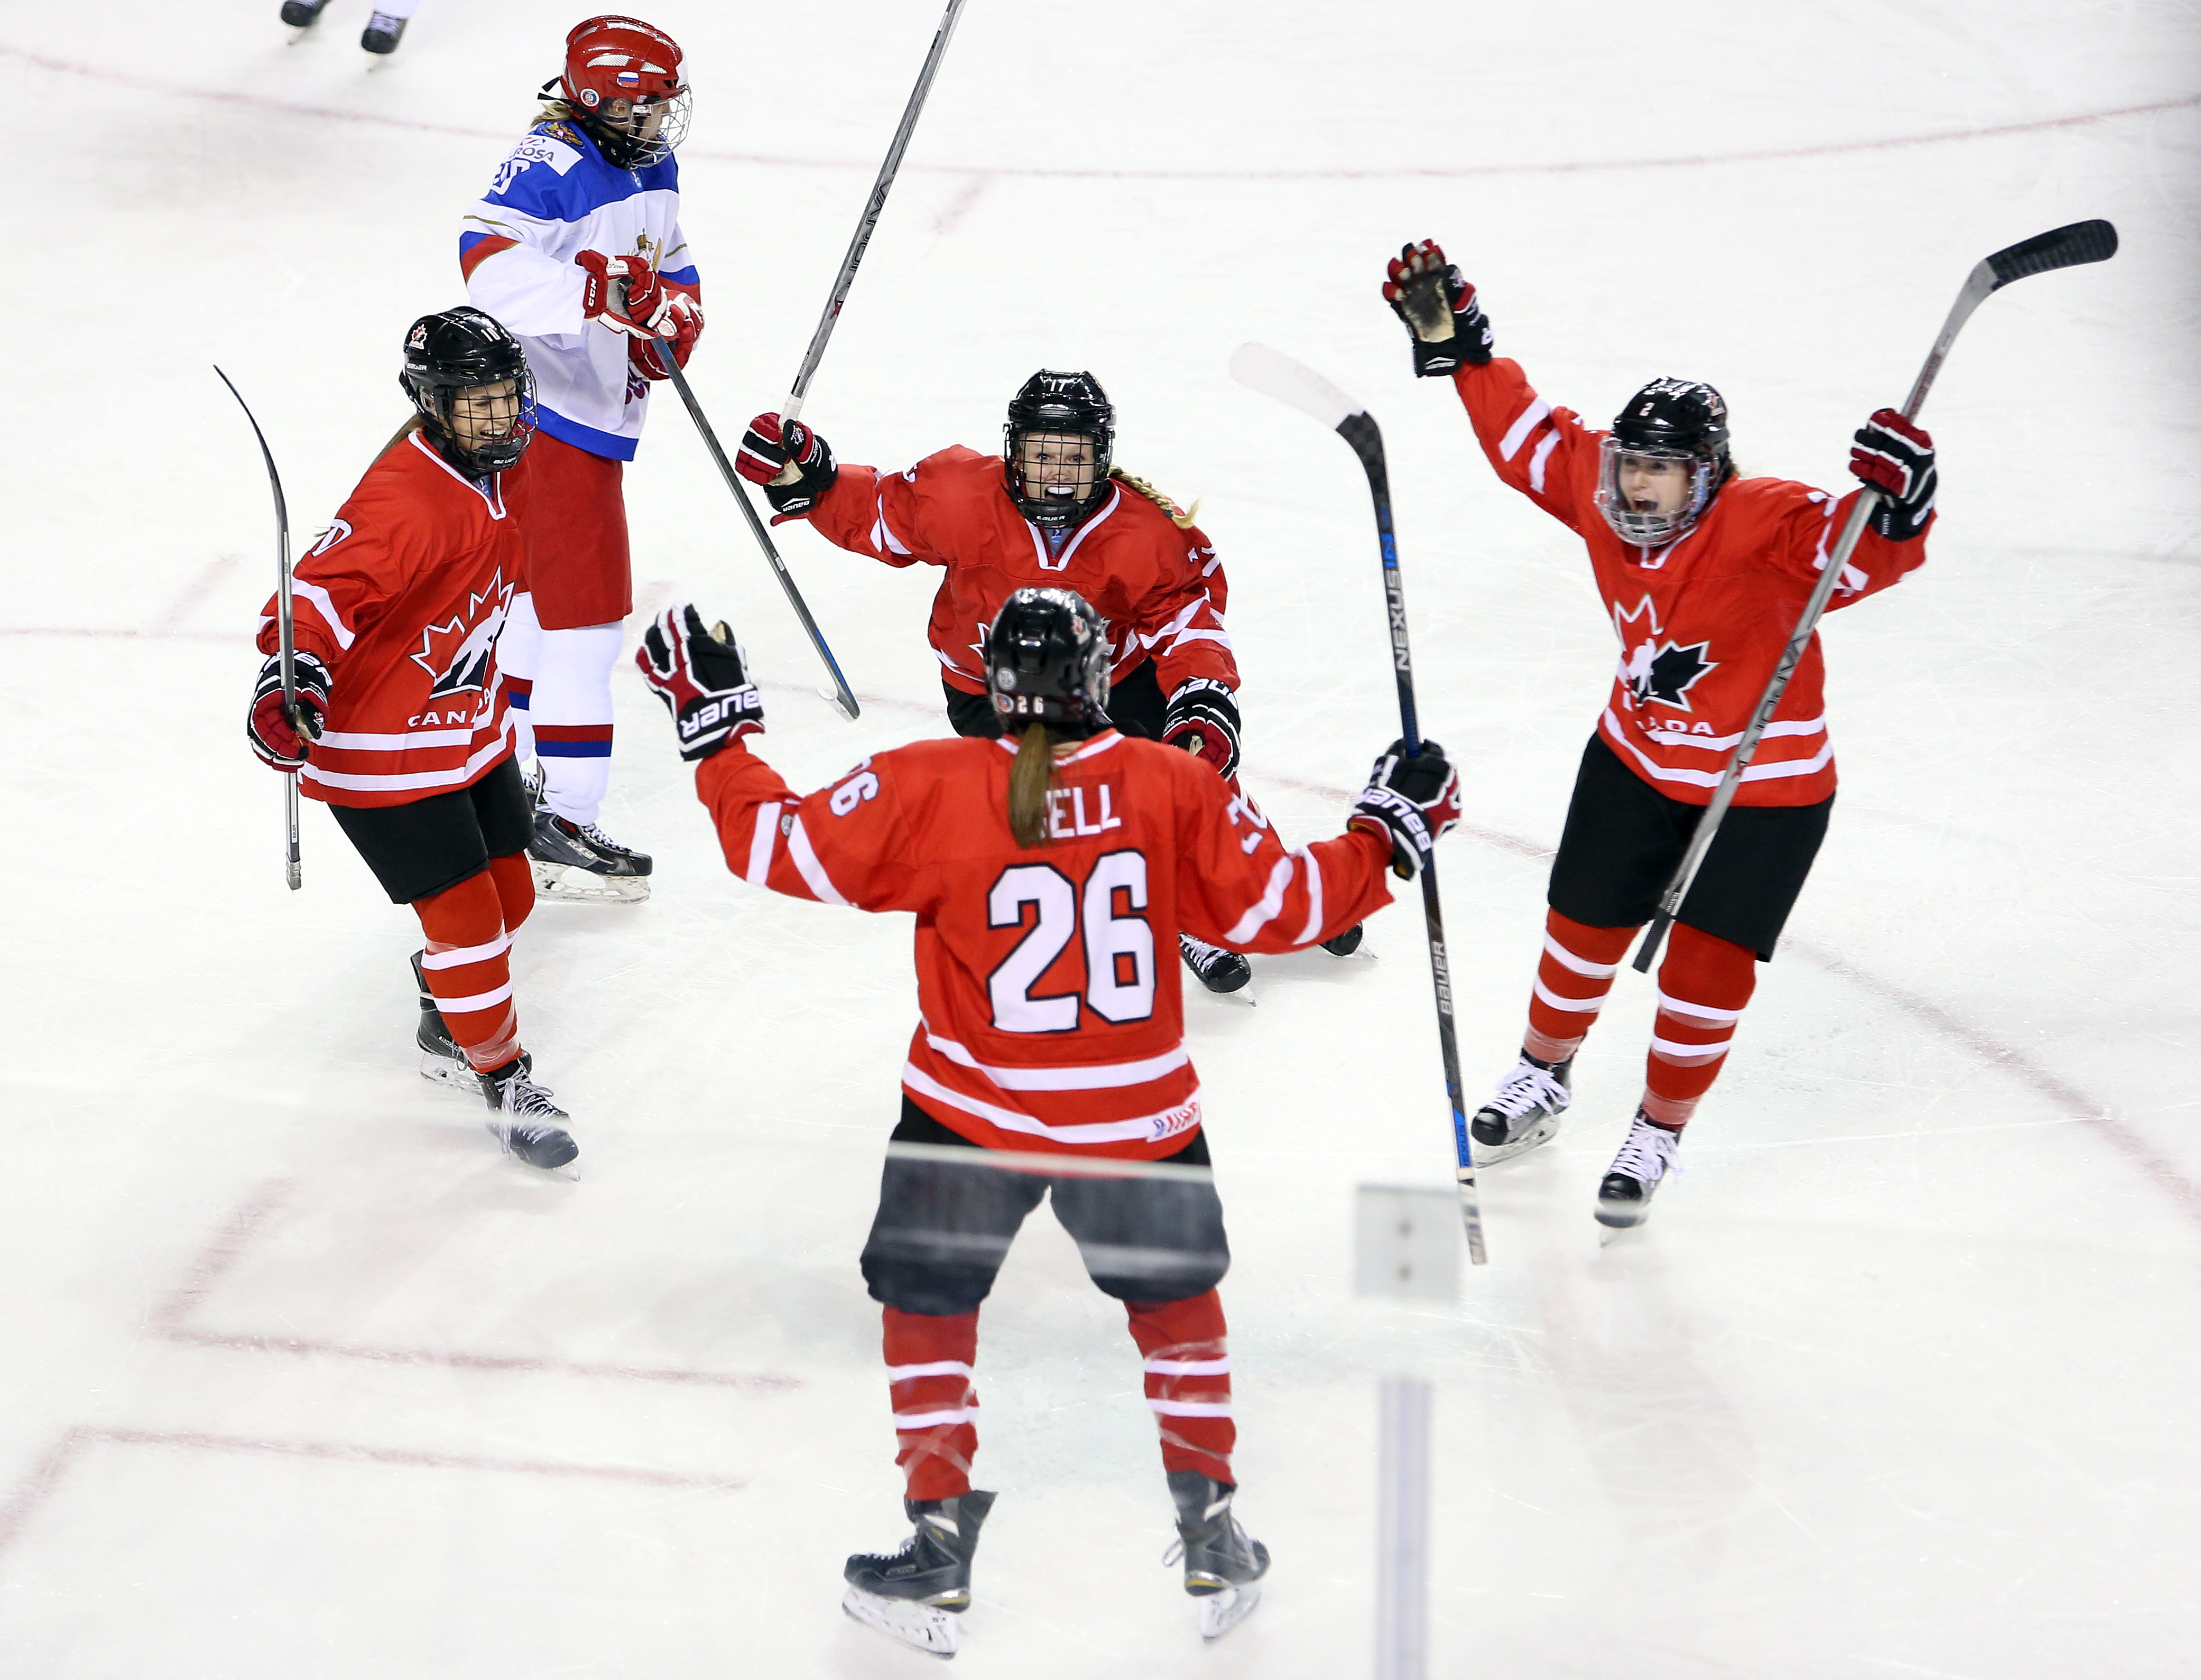 Kristin O'Neill #10, Emma Maltais #17 and Codie Cross #2 of Team Canada celebrate a goal by teammate Ashton Bell #26 in a semifinal game against Team Russia during the 2016 IIHF U18 Women's World Championships at the Meridian Centre on January 14, 2